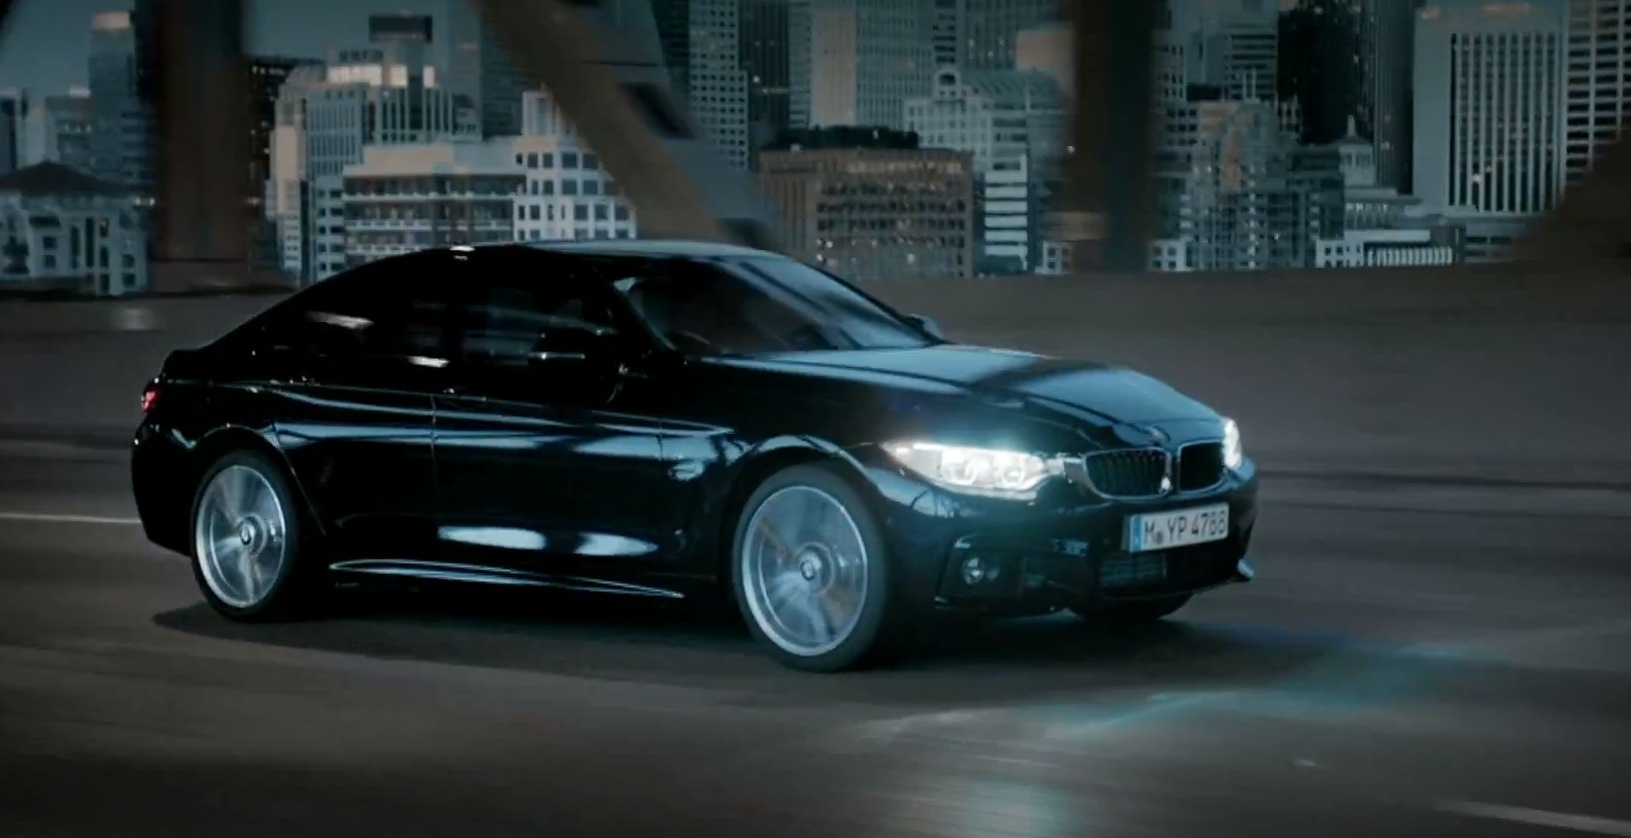 bmw 4 series gran coupe featured in elegant launchfilm - autoevolution